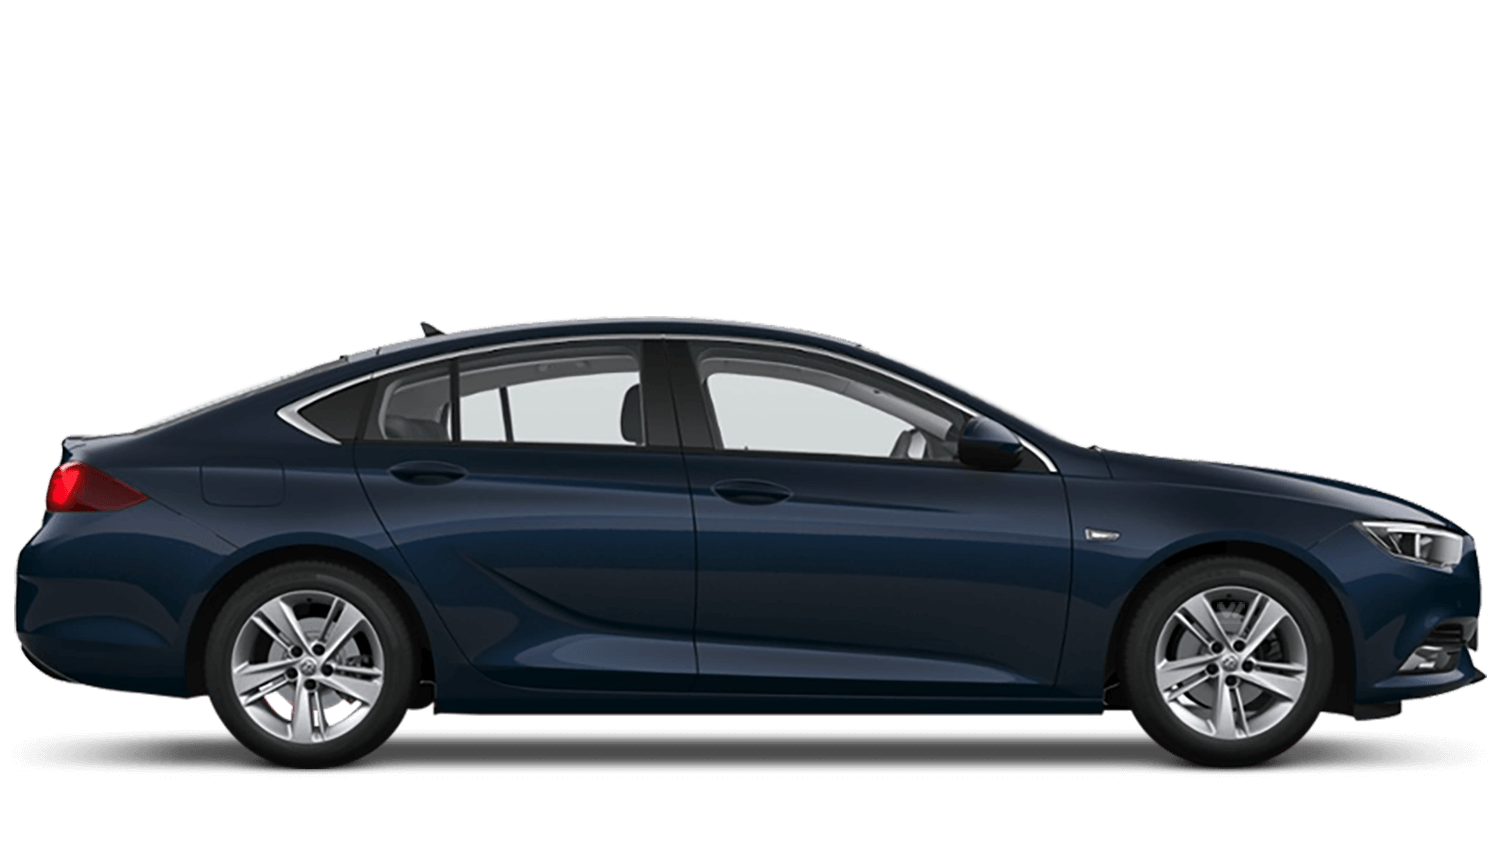 Navy Blue (Metallic) Vauxhall Insignia Grand Sport